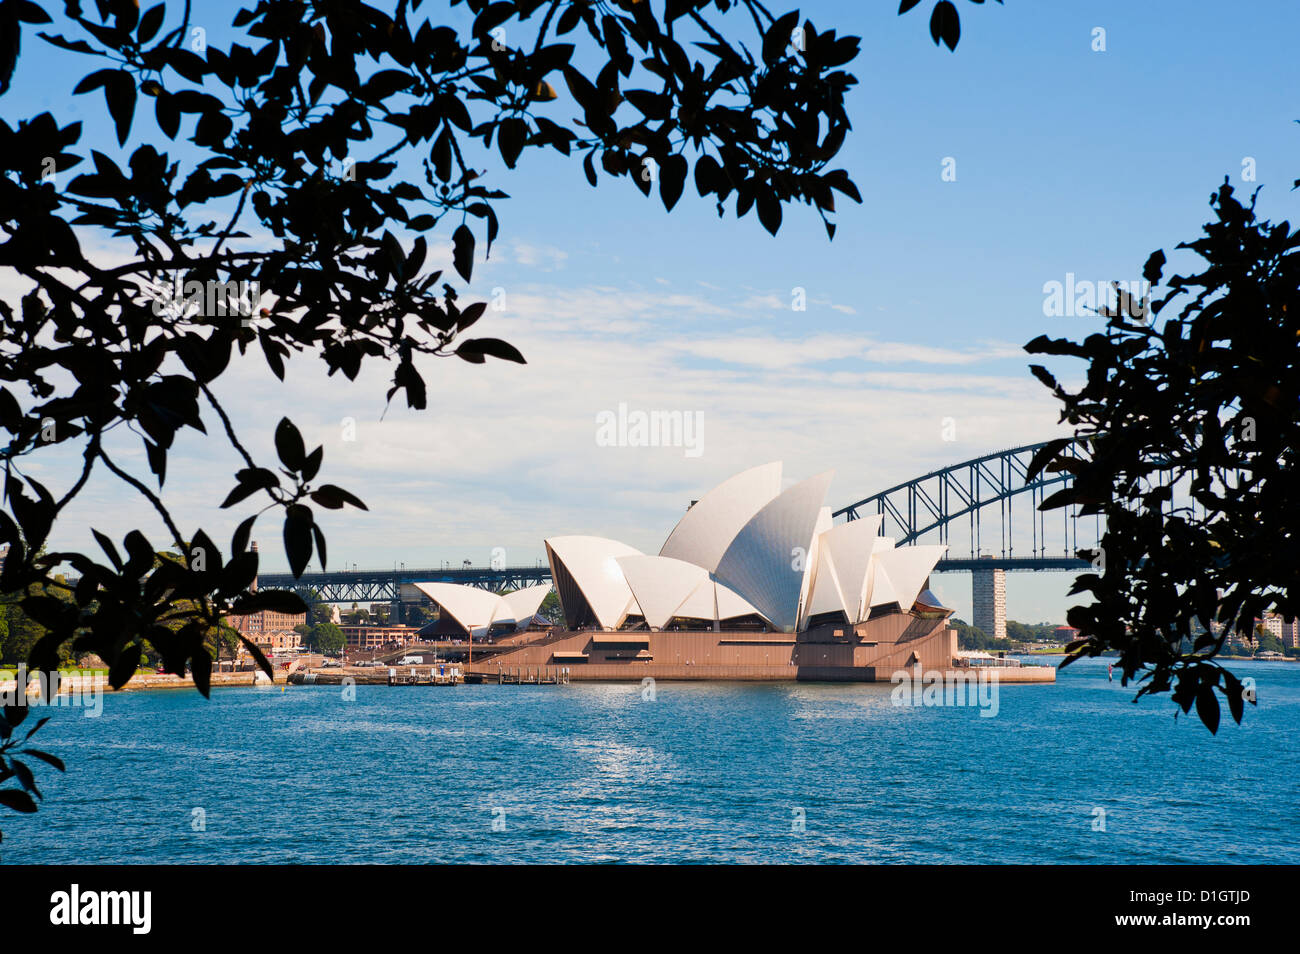 Sydney Opera House, and bridge from the Sydney Botanic Gardens, Sydney, New South Wales, Australia, Pacific - Stock Image